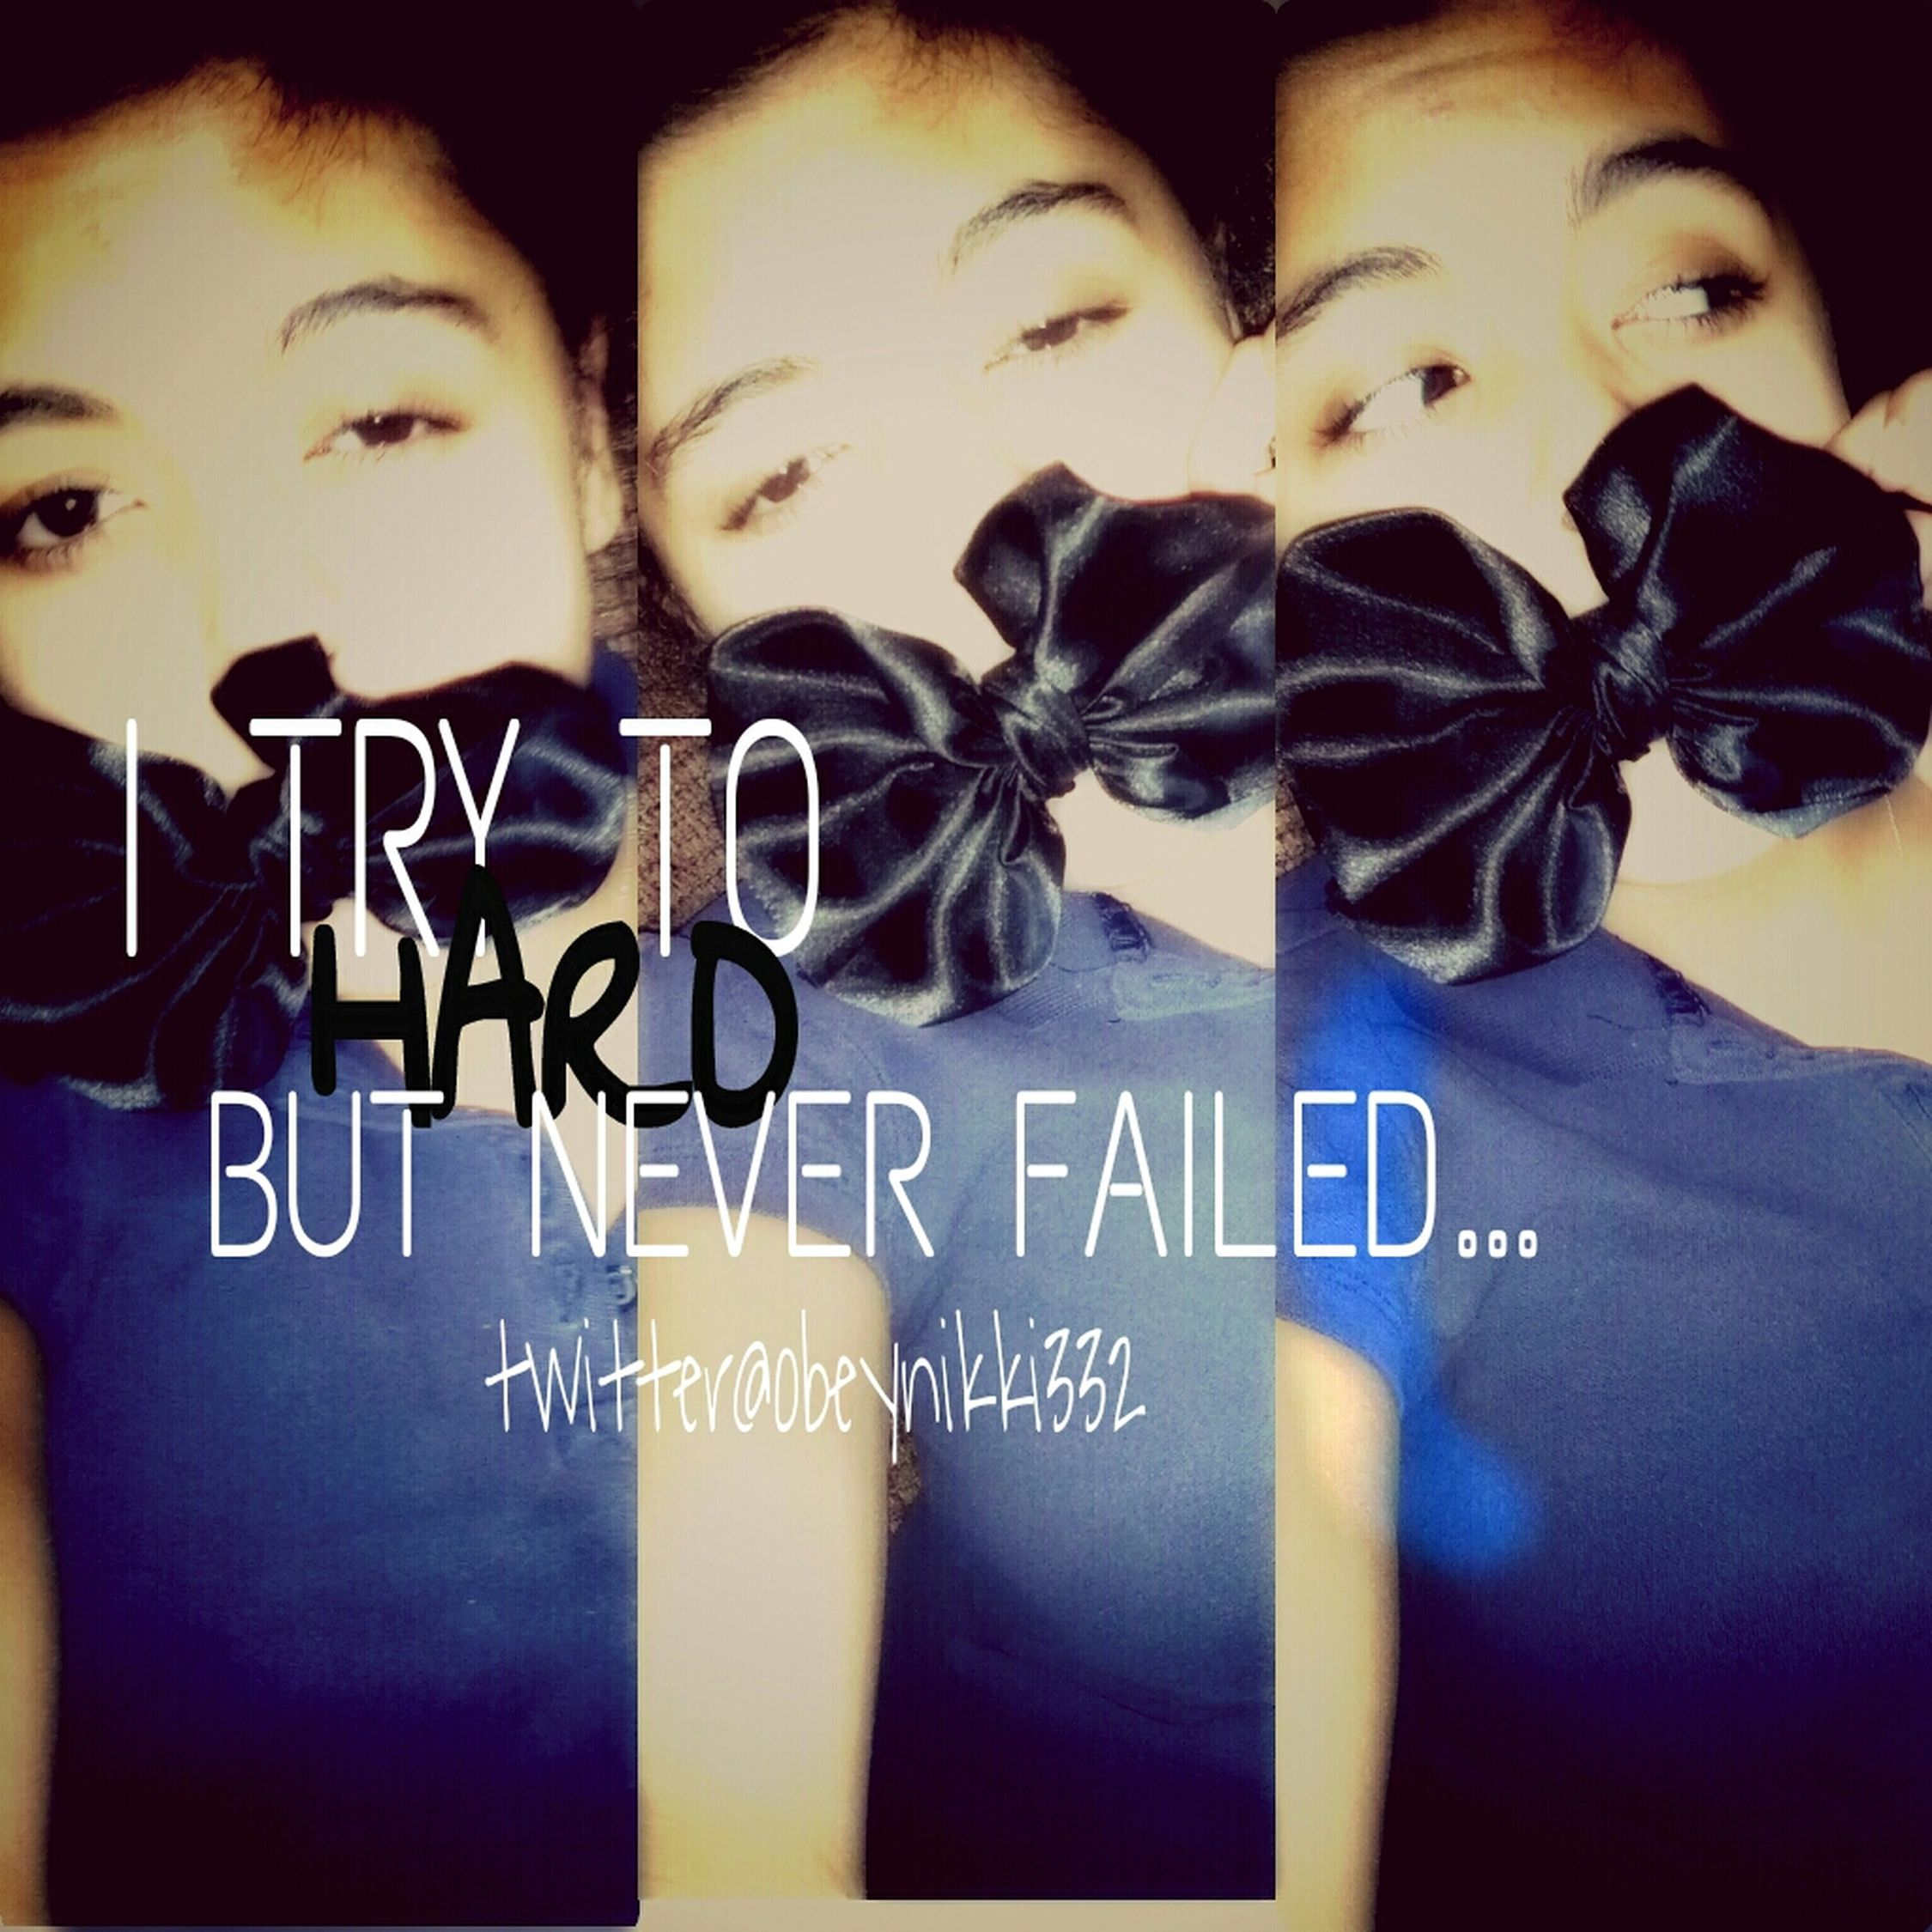 I Try To Hard But Never Failed ...